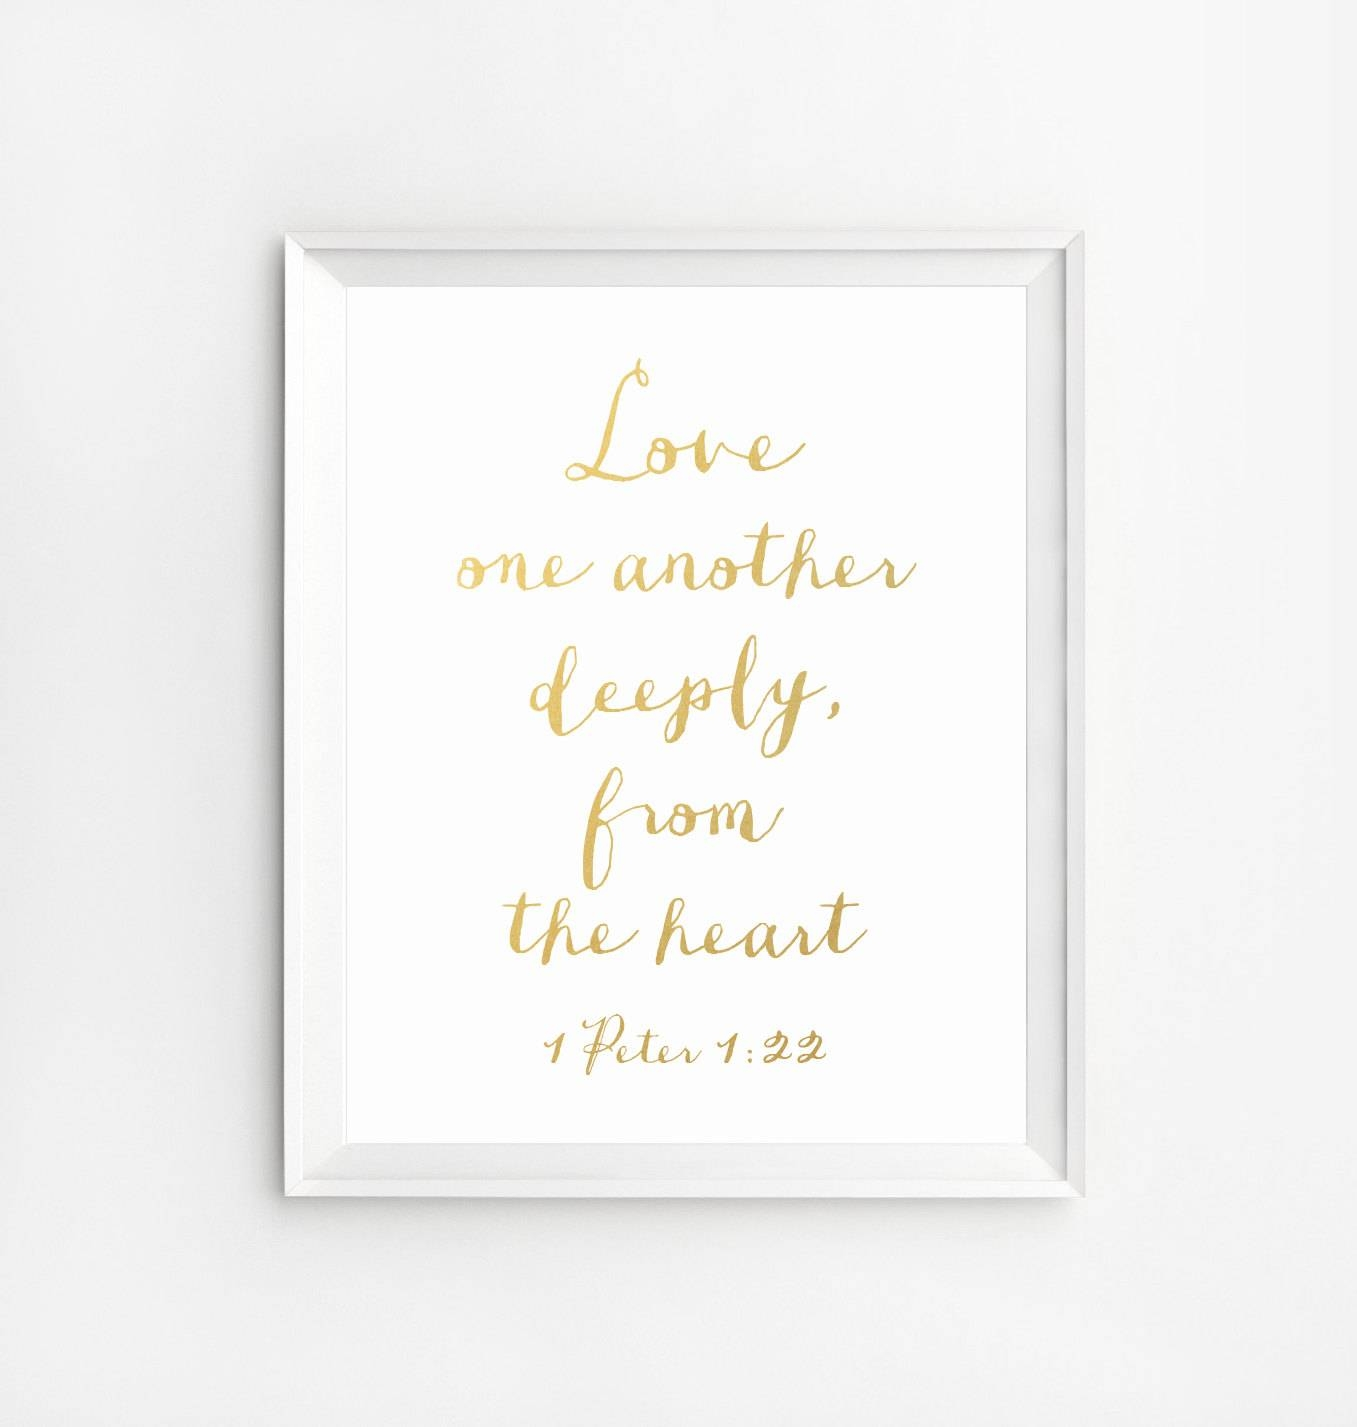 Bible Verse Wall Art Decor Scripture Print Gold Gold Foil Inside Latest Bible Verses Wall Art (View 7 of 30)